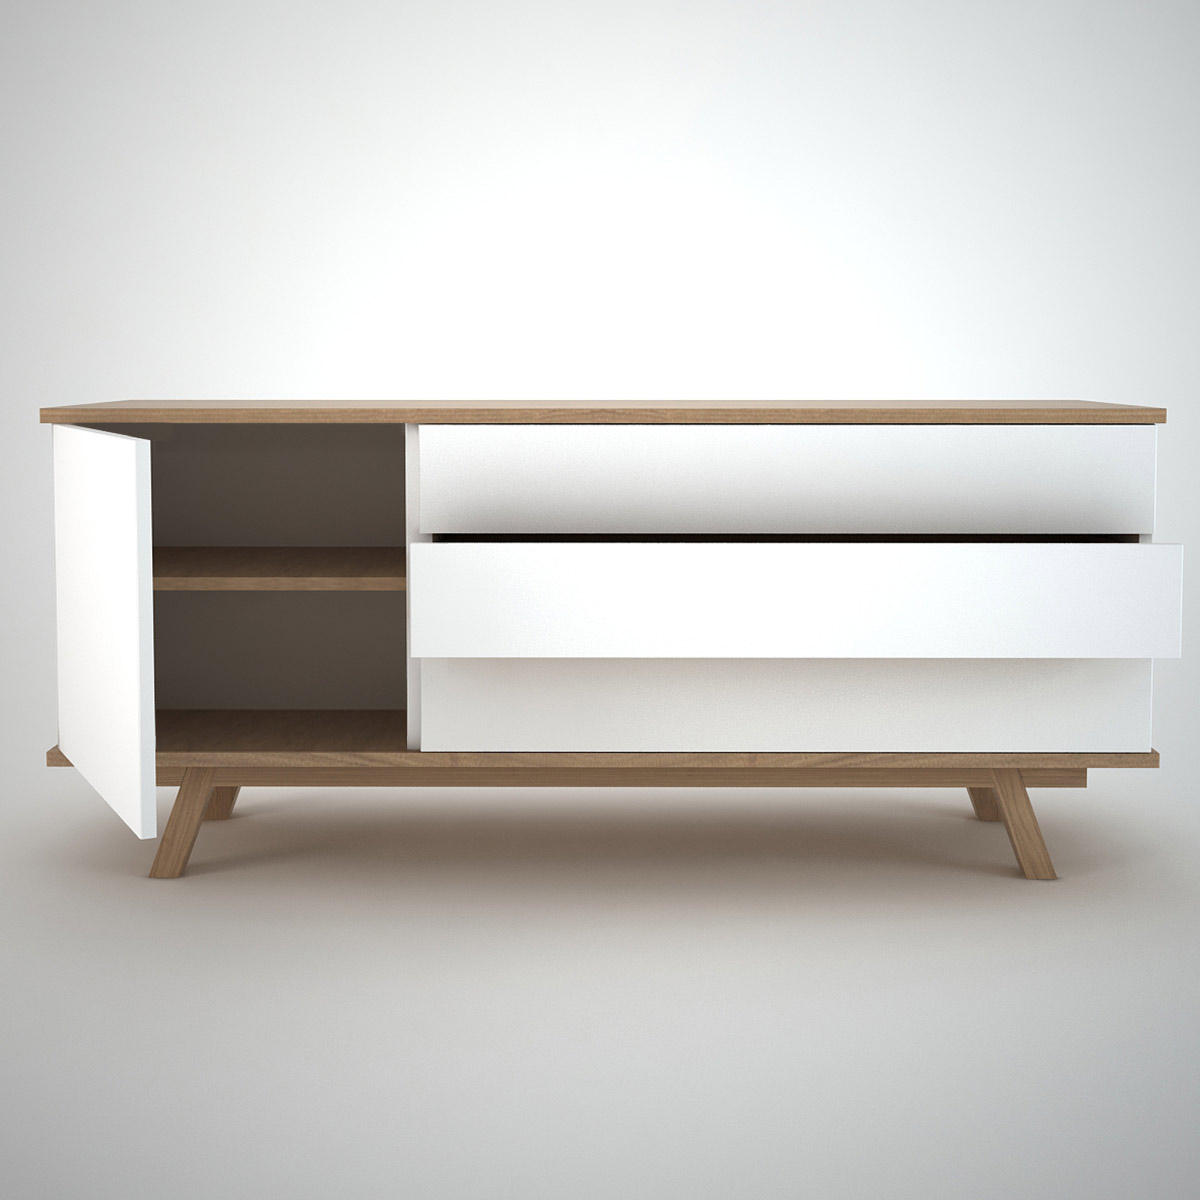 Faszinierend Sideboard Modern Galerie Von In White And Oak